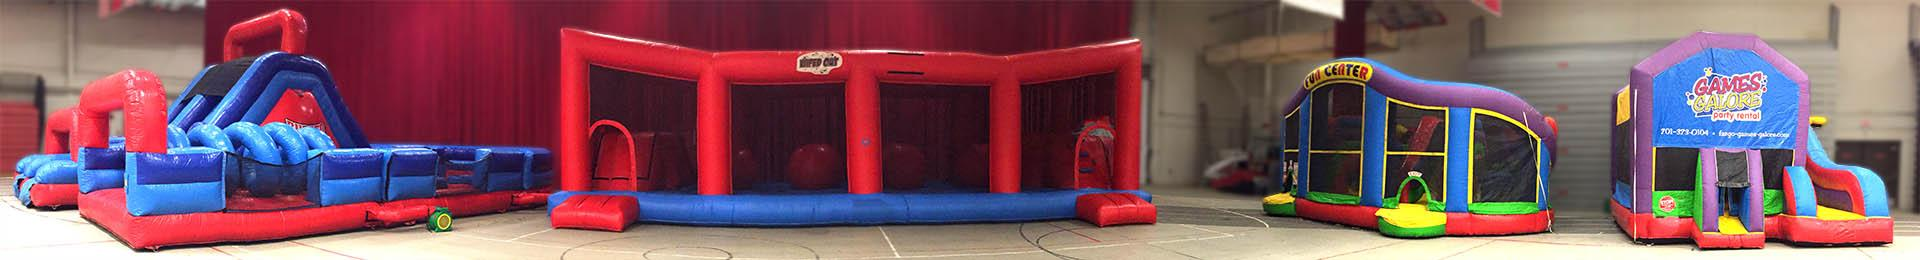 Grouping of inflatable games including the Wiped Out Interactive